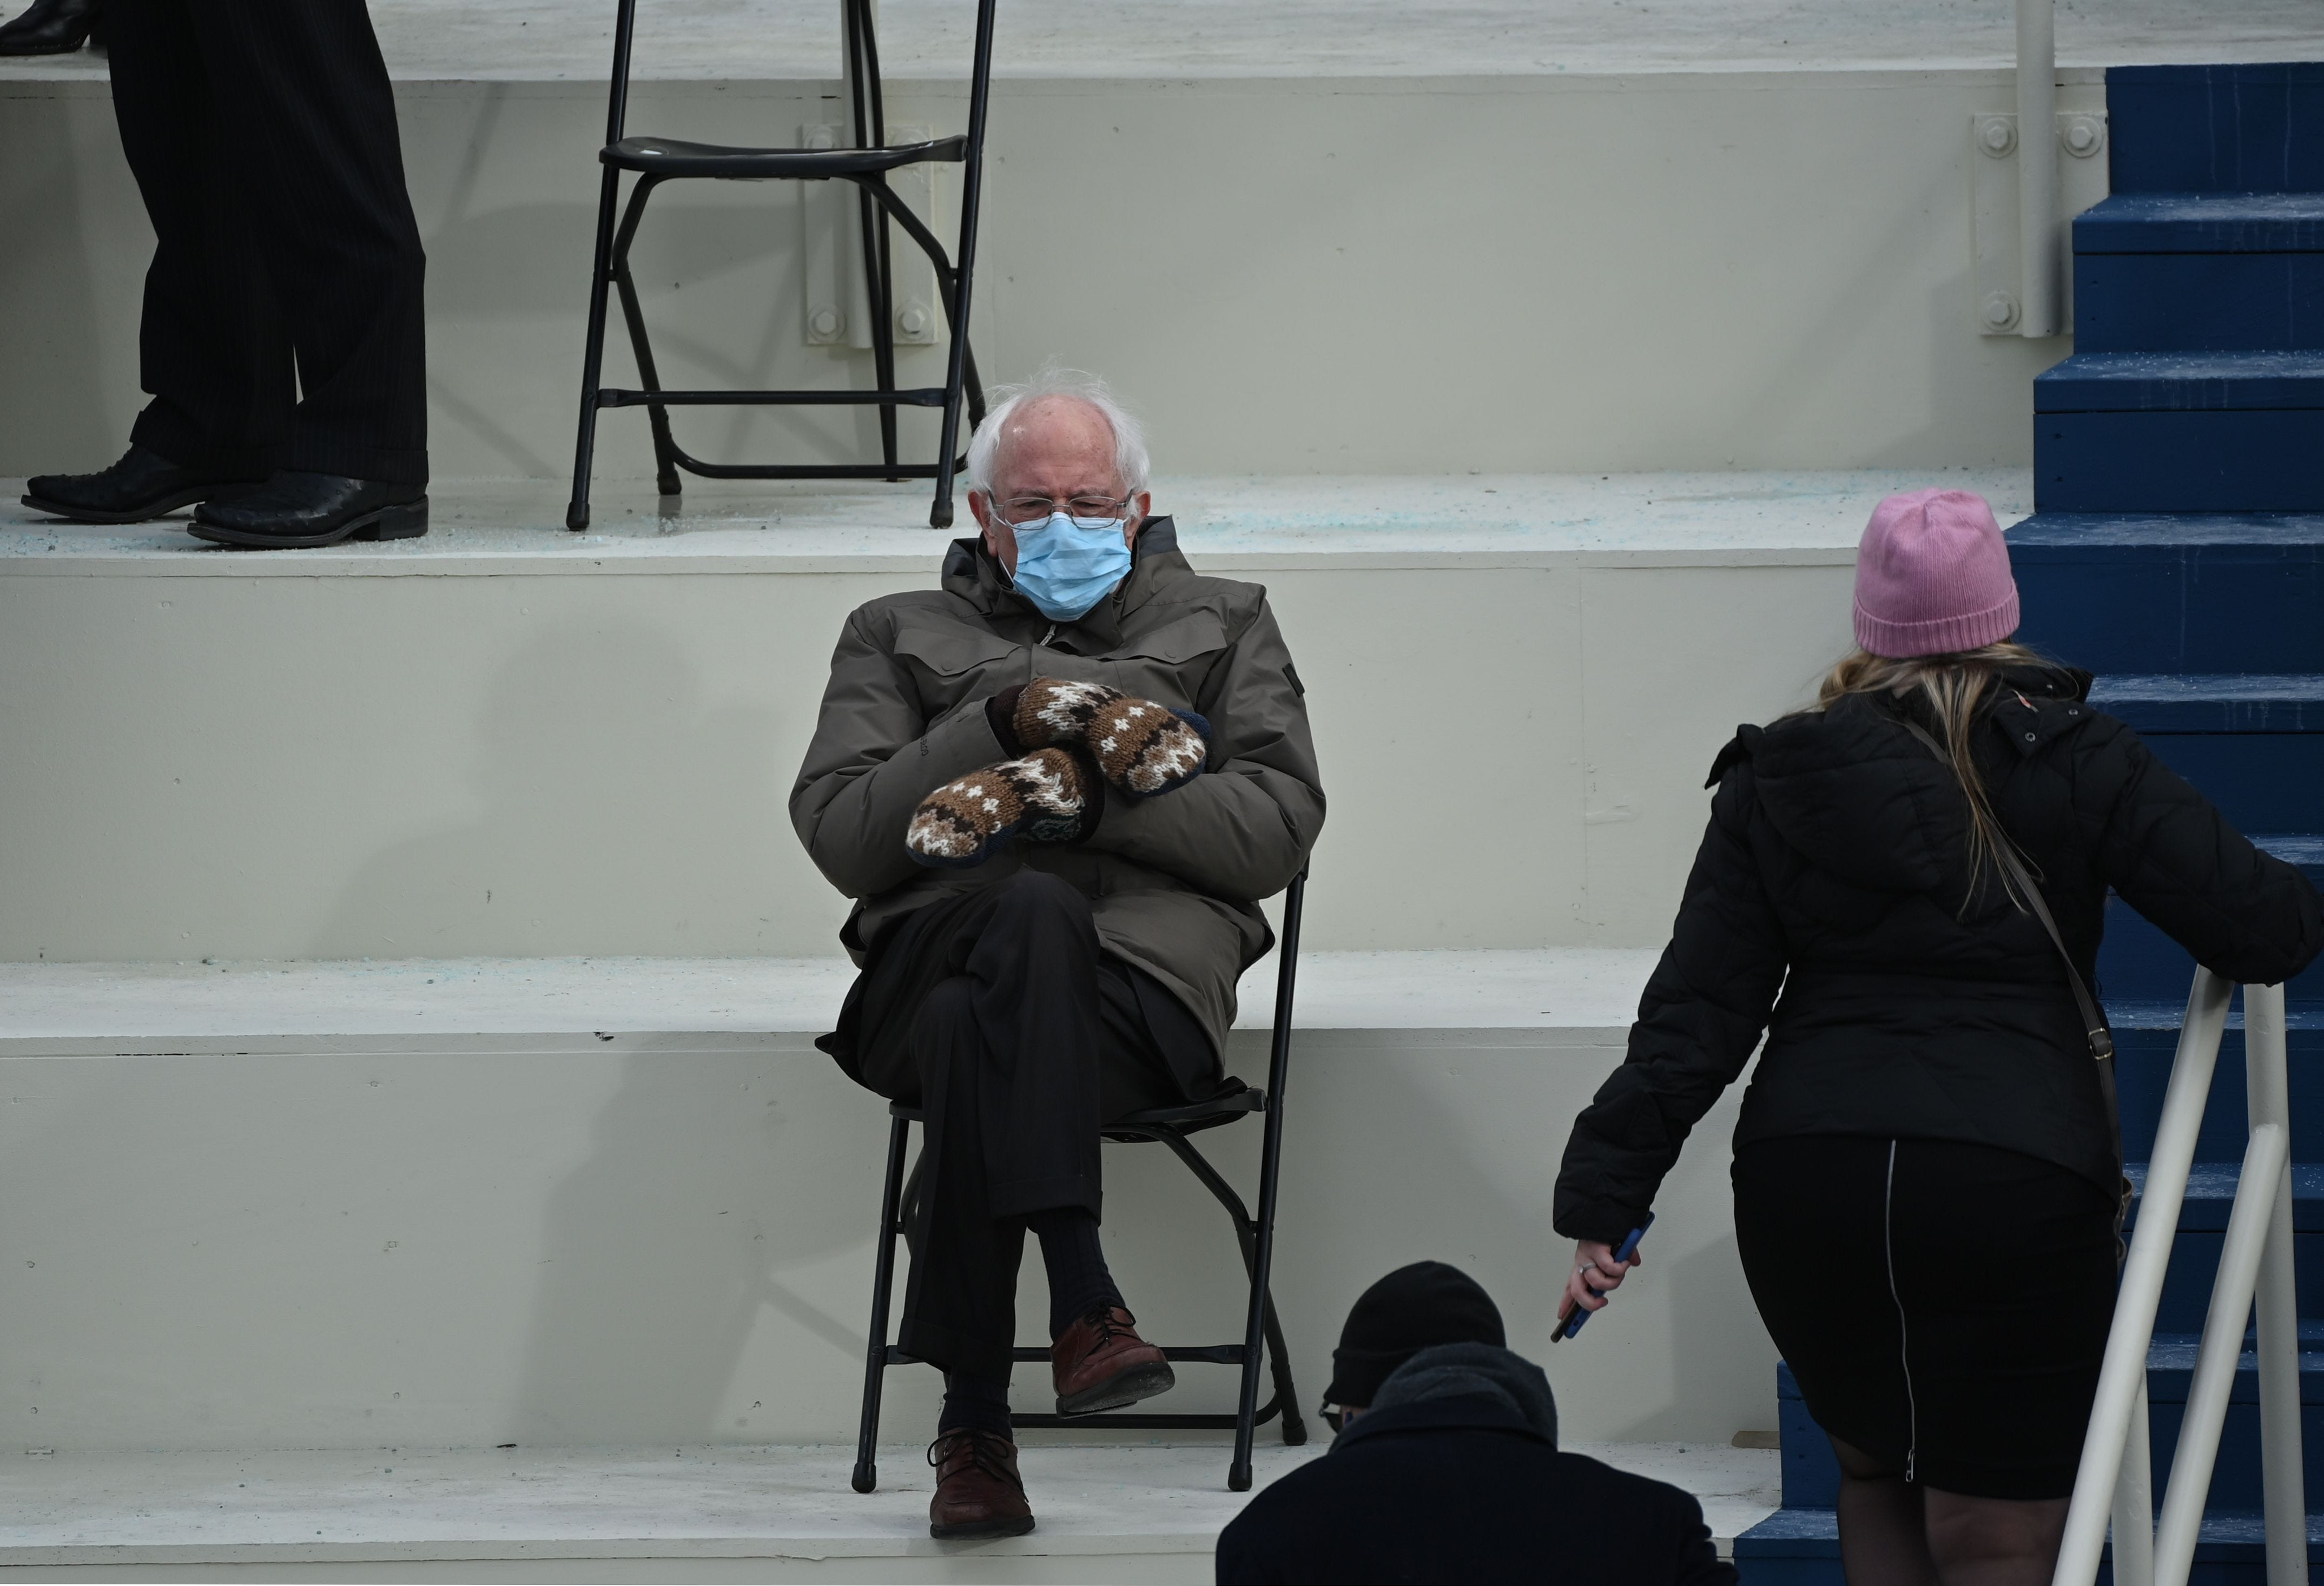 #BerniesMittens: Bernie Sanders makes inaugural fashion statement 'looking like a man who was preparing to shovel the driveway'